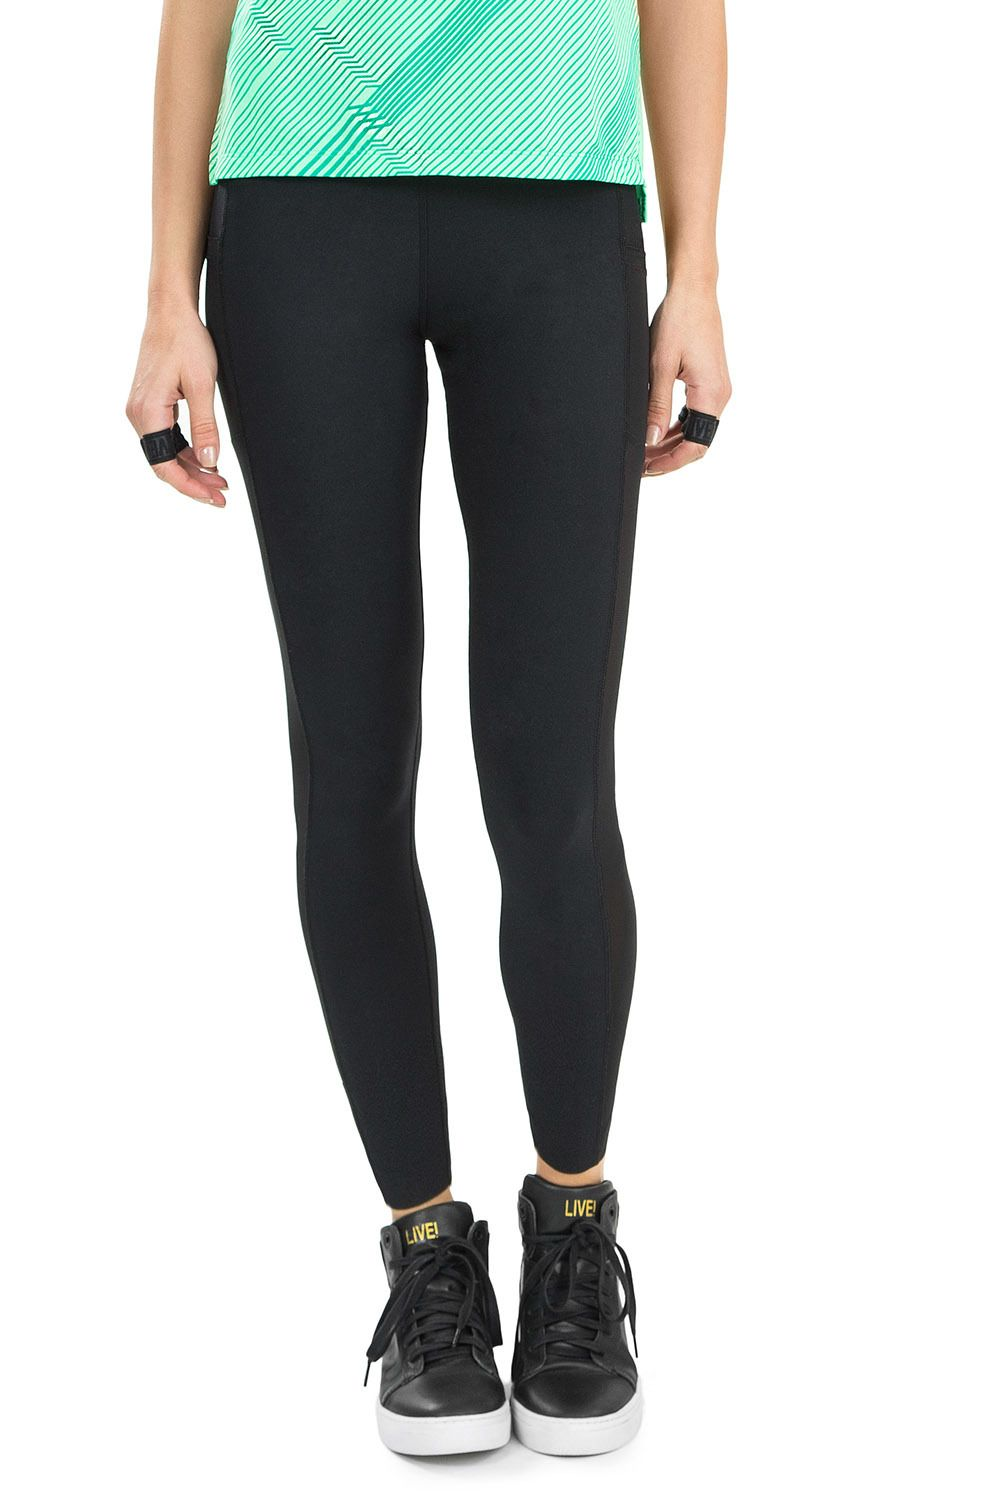 Calça Legging Sculpt Power Live